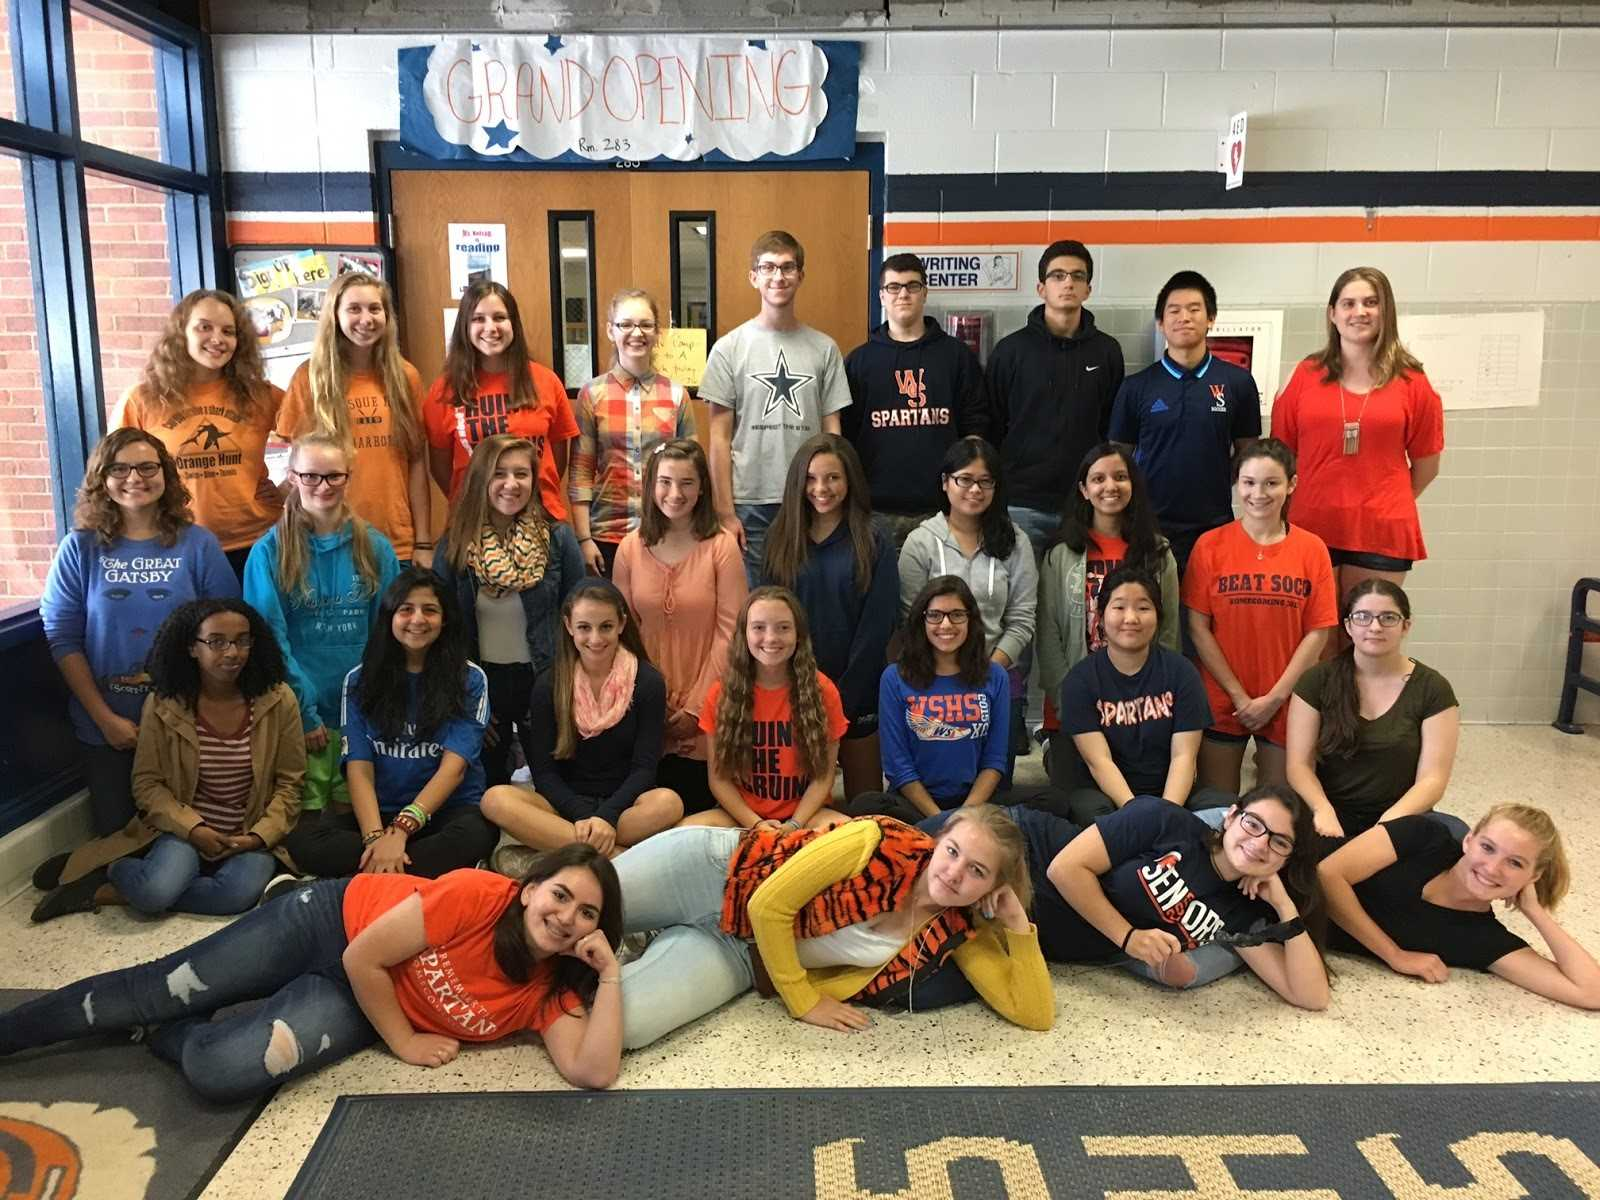 The current Writing Center focuses on helping other students with their writing pieces for English and other classes. Next year, the Writing Center will become the Peer Tutoring Center and will cater to all subject areas. Pictured above is this year's Writing Center staff posing